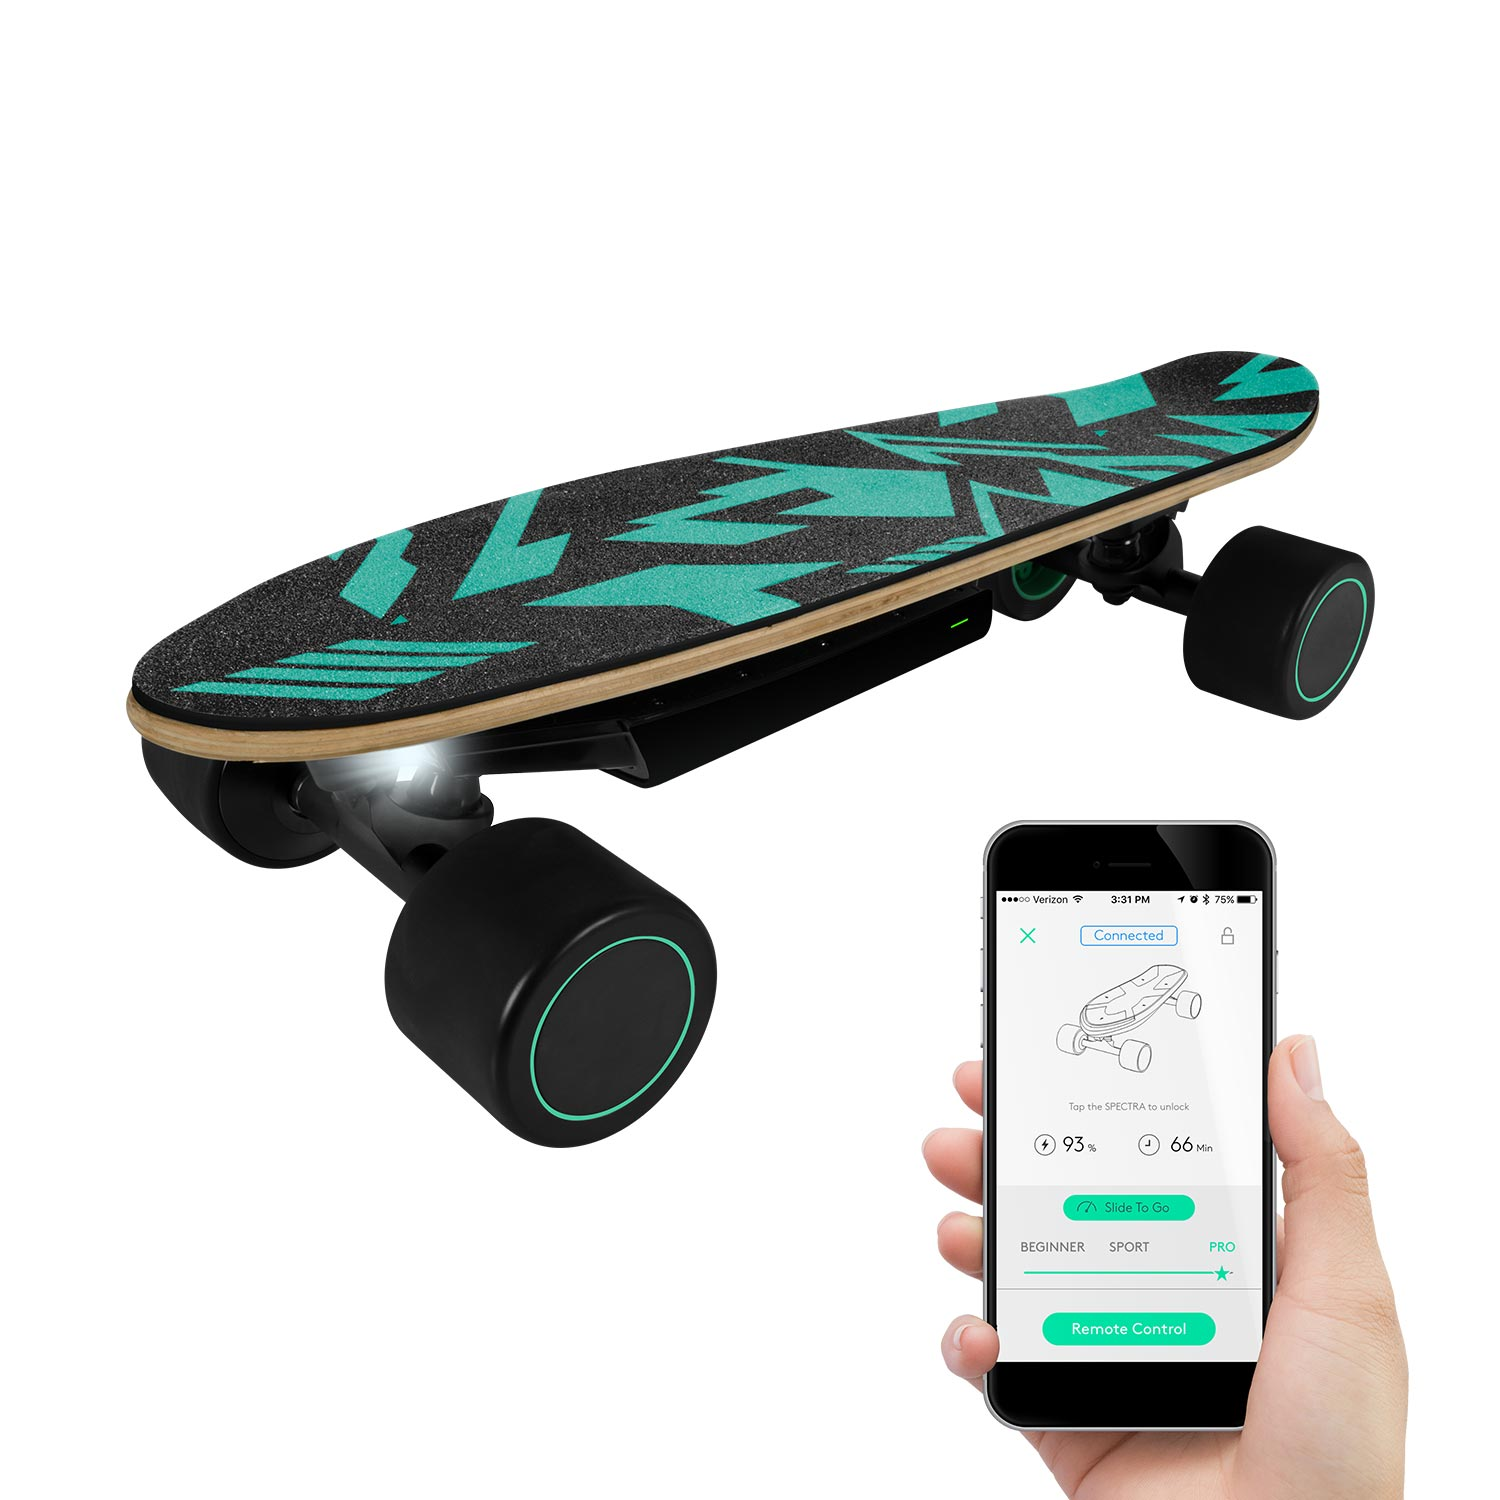 SWAGTRON Swagskate Penny AI Electric Skateboard – Hands Free Cruiser Skateboard with App, 5.6 MI per Charge, 9.3 MPH, Fast Charging Remote Control Skateboard